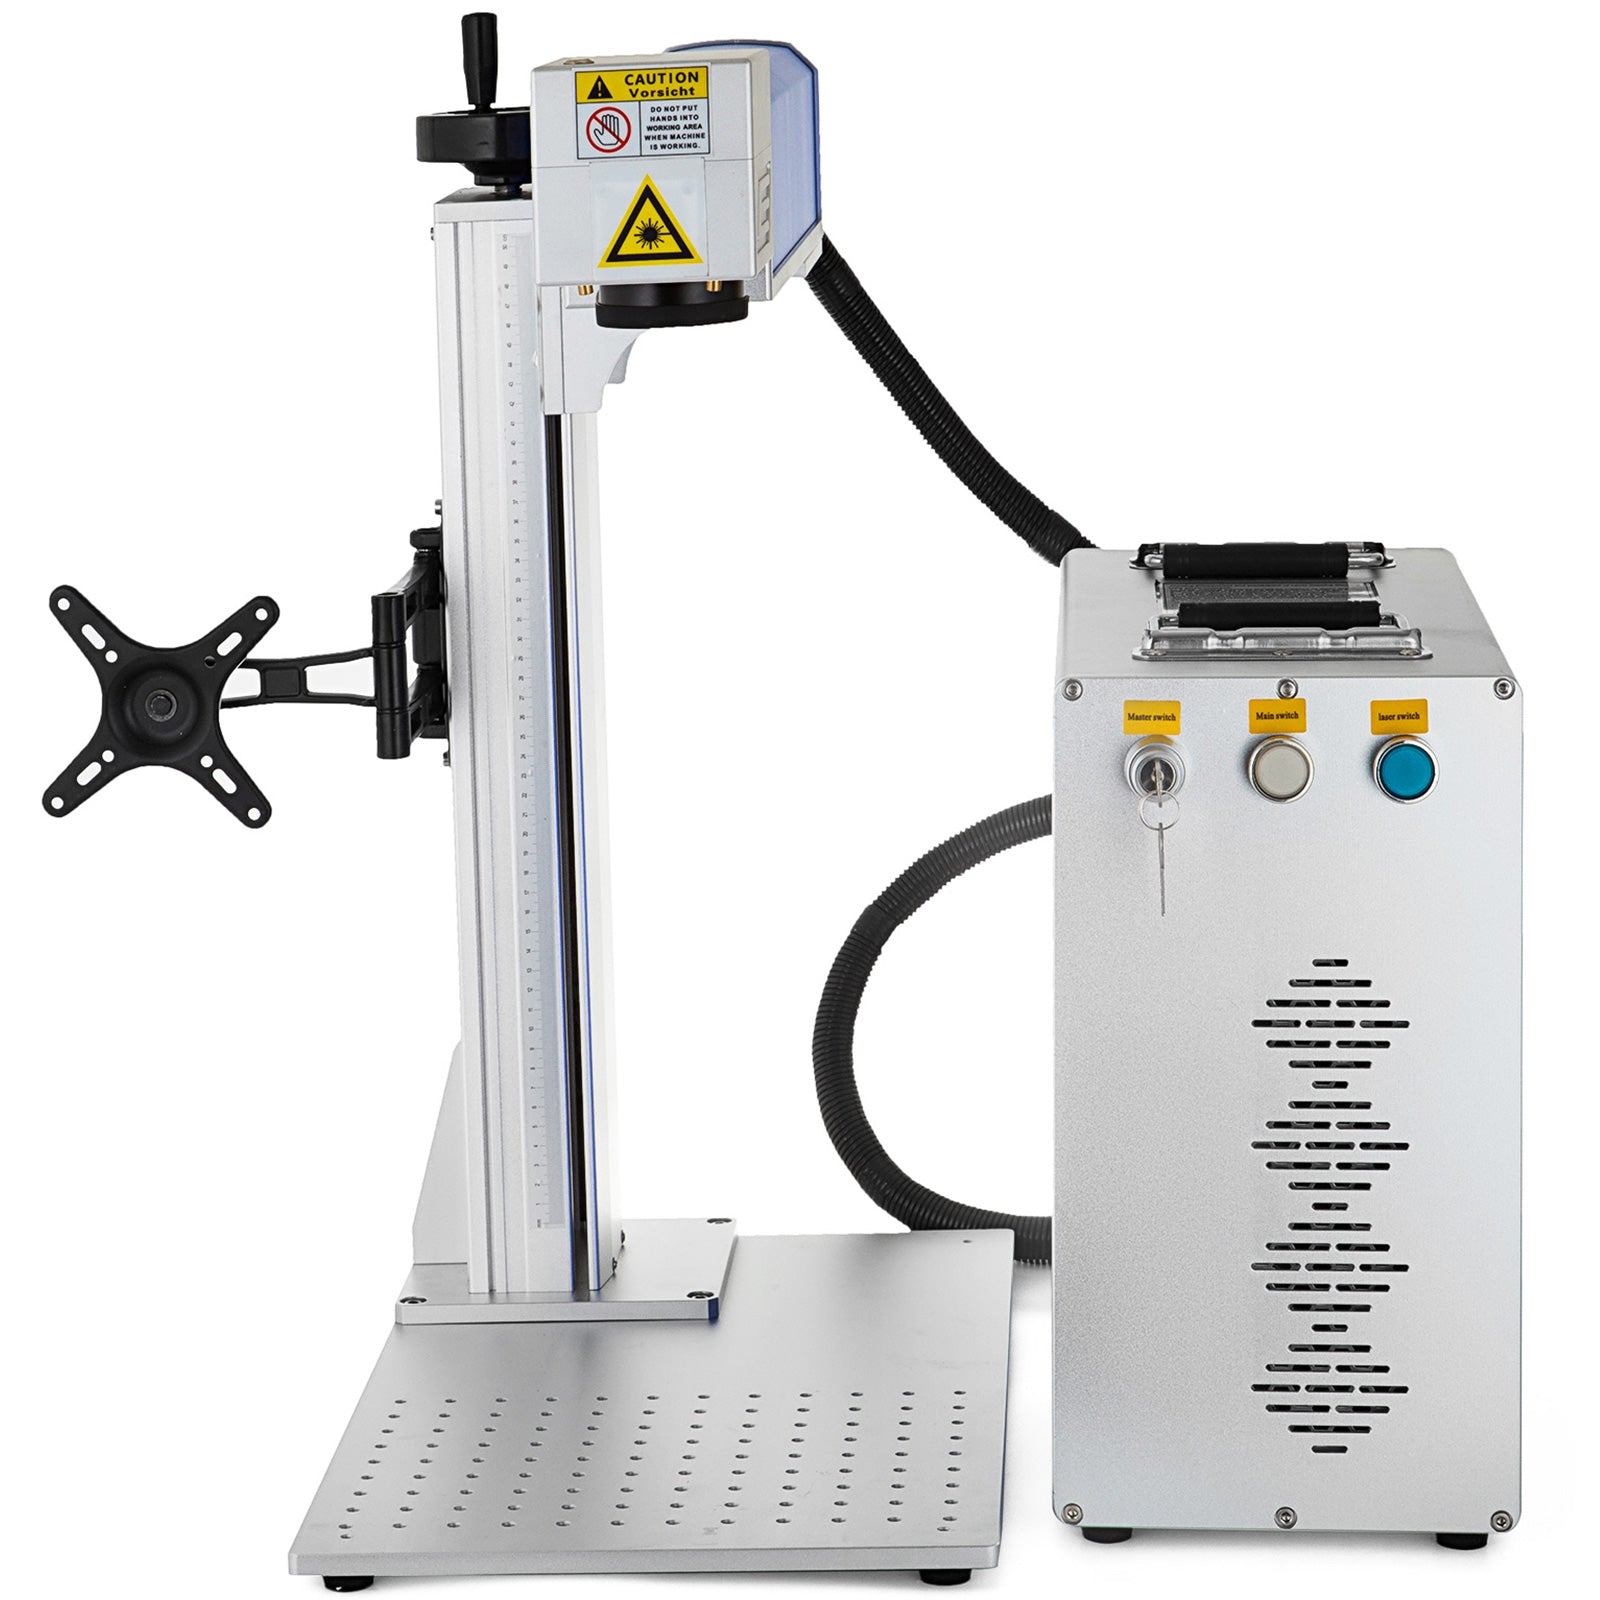 20w Fiber Laser Marking Machine Photoshop Novel Design 32/64 Bit Split Style